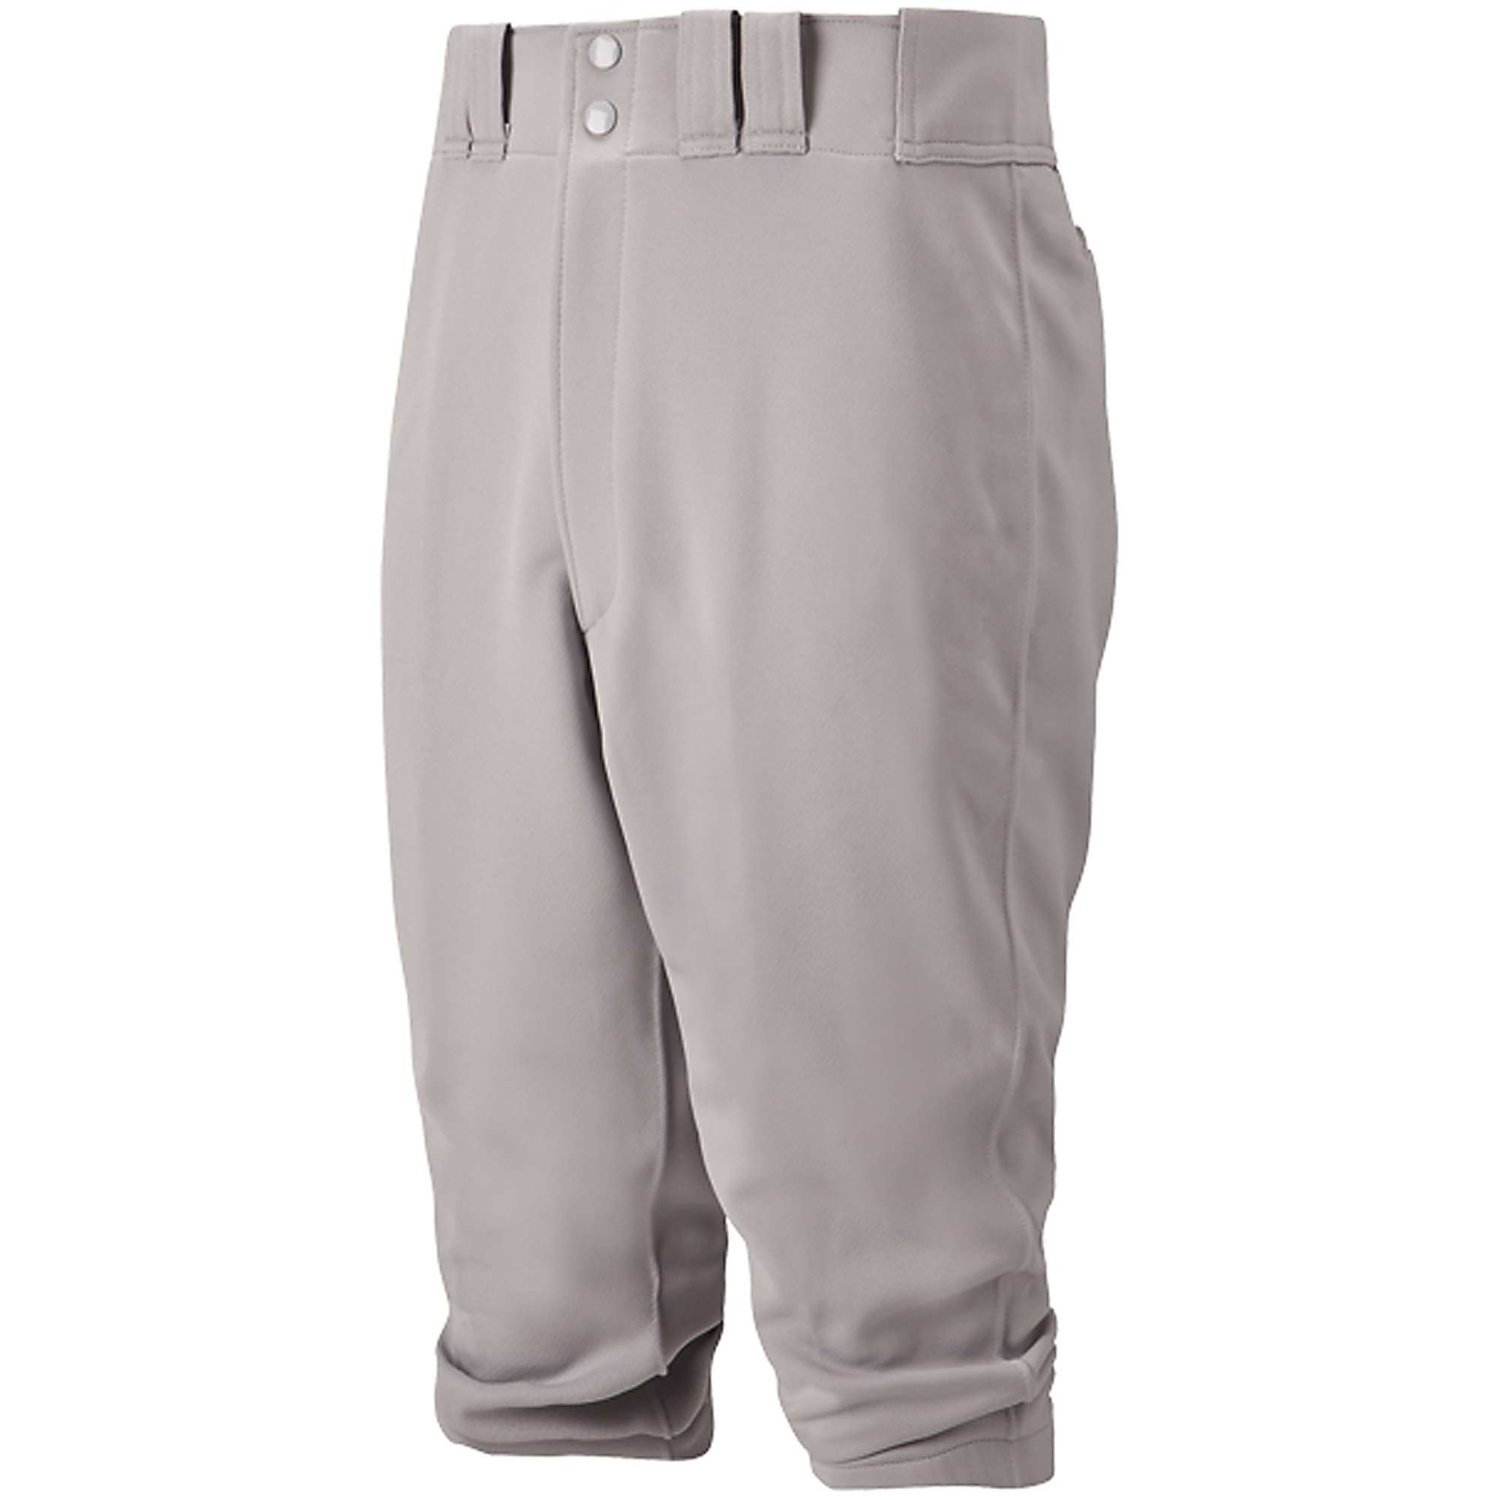 Mizuno Youth Premier Short Baseball Pant, Grey, Youth Medium by Mizuno